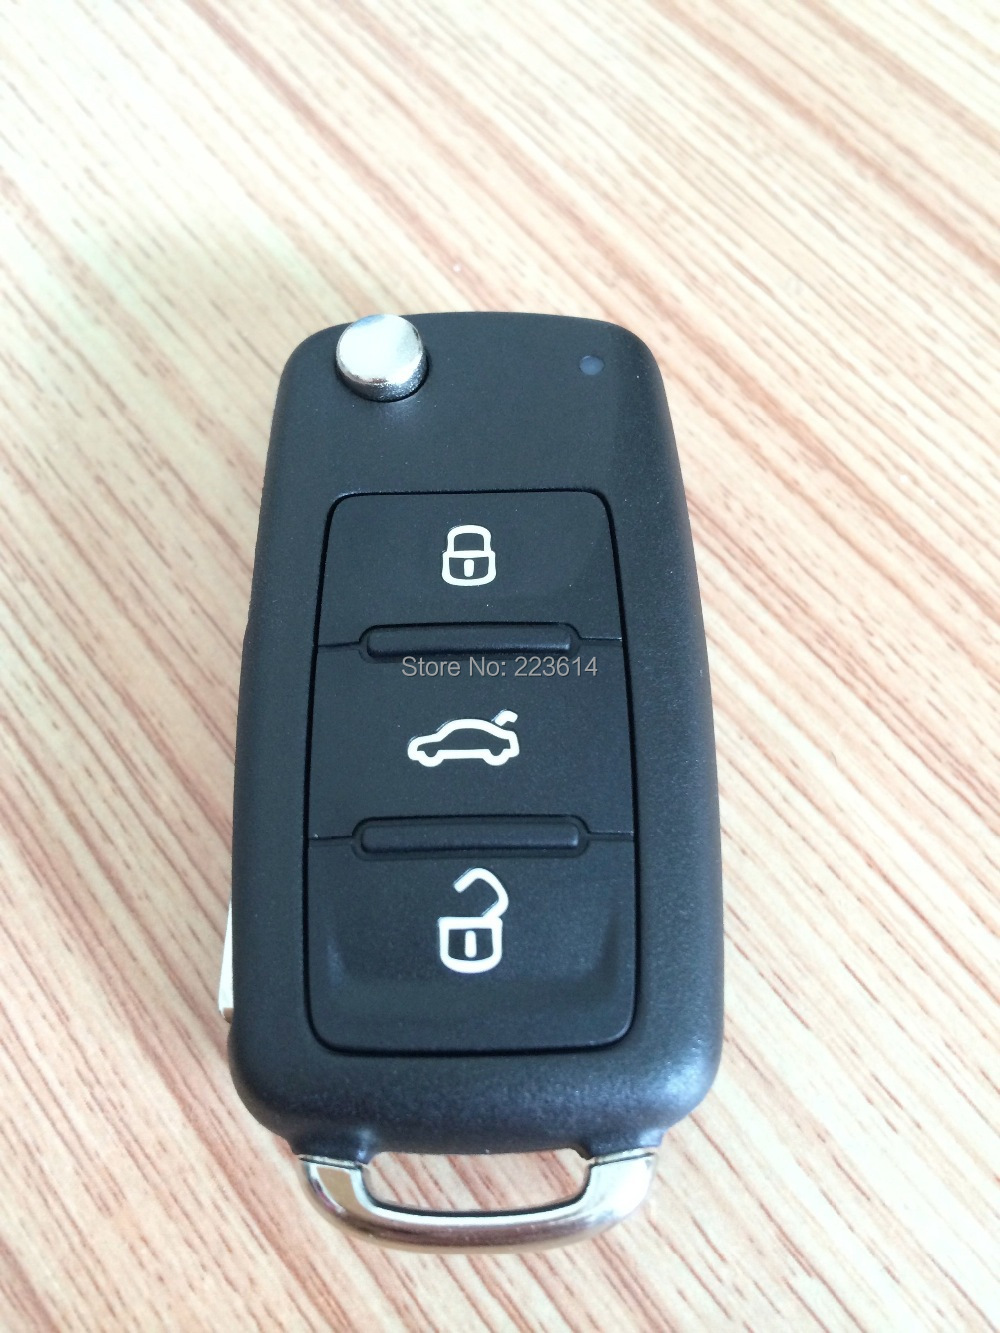 New Original Flip Remote Key For VW 5K0 837 202 AD 433MHZ With 48 CAN Chip Inside Excellent Quality <br><br>Aliexpress